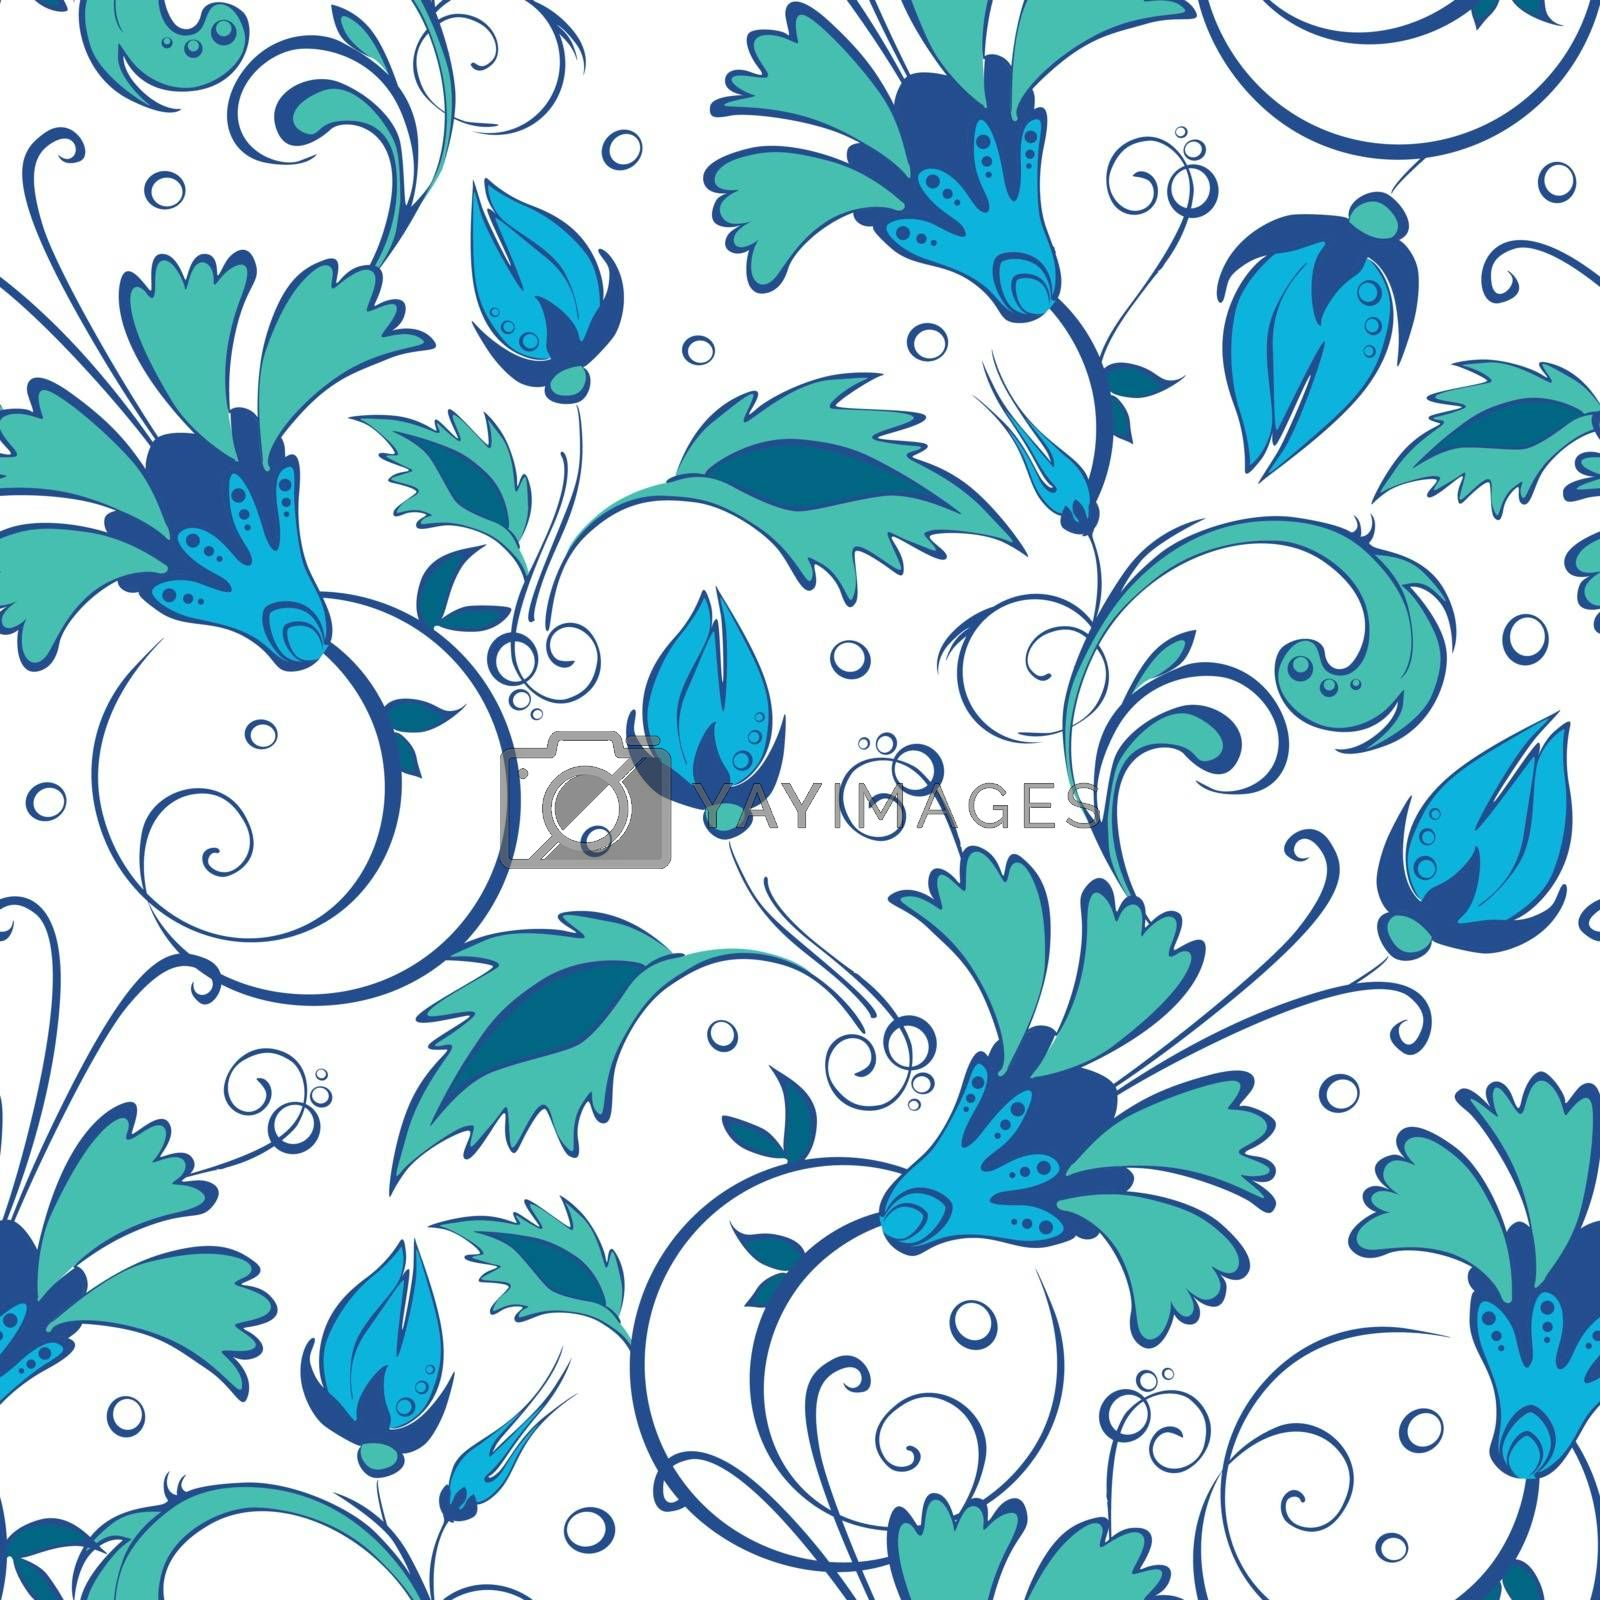 vector blue green swirly flowers seamless pattern background graphic design